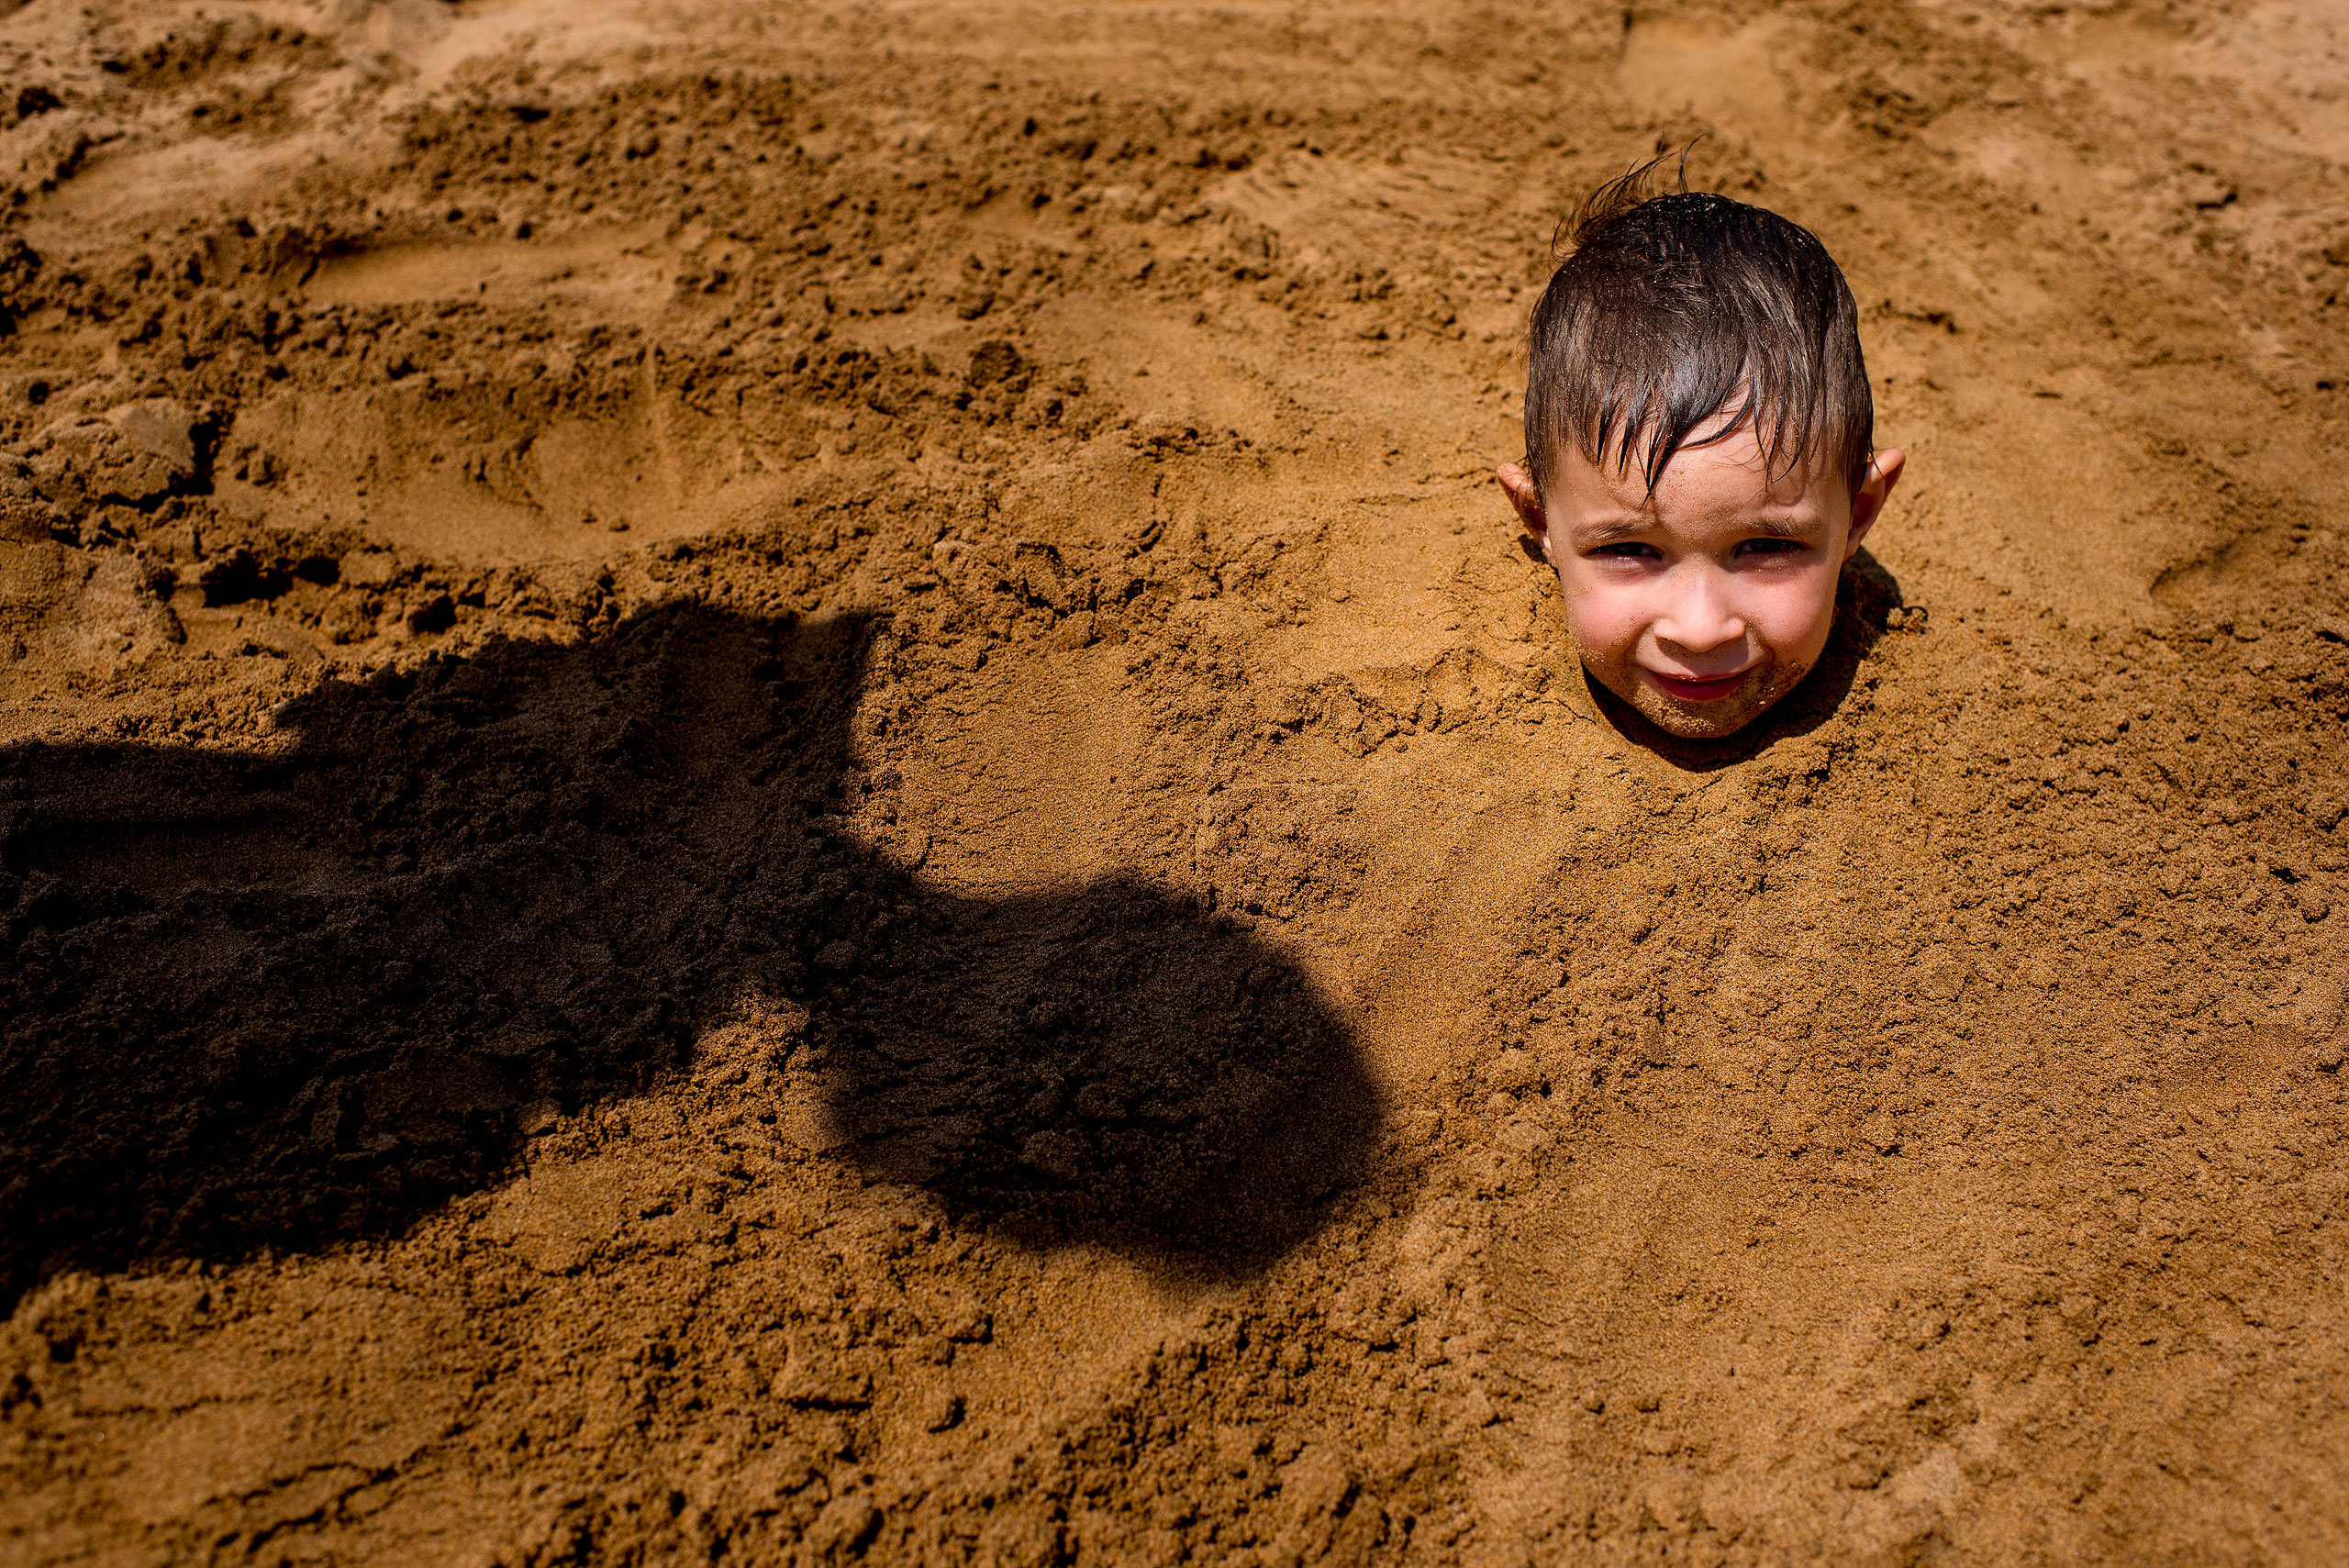 a young boy buried in the sand up to his neck by destination family photographers sean leblanc